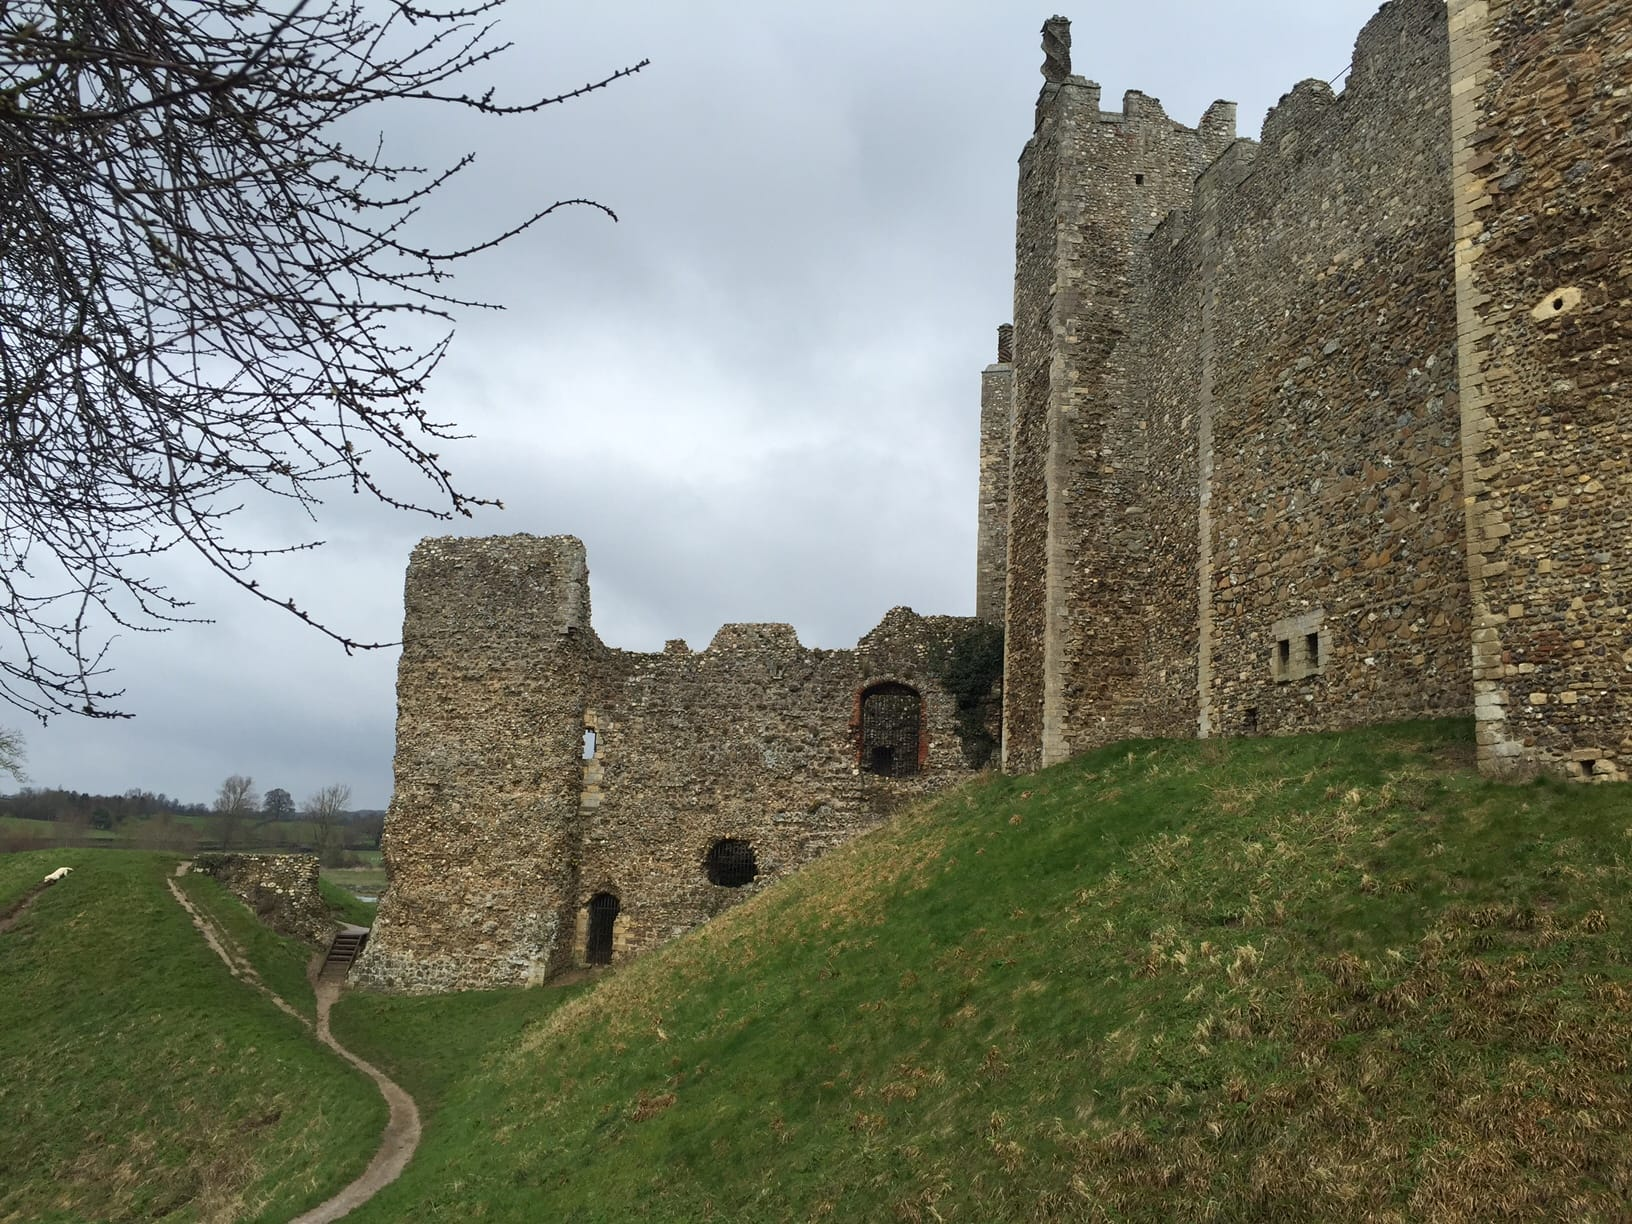 The walking paths in the dry moat outside Framlingham Castle.